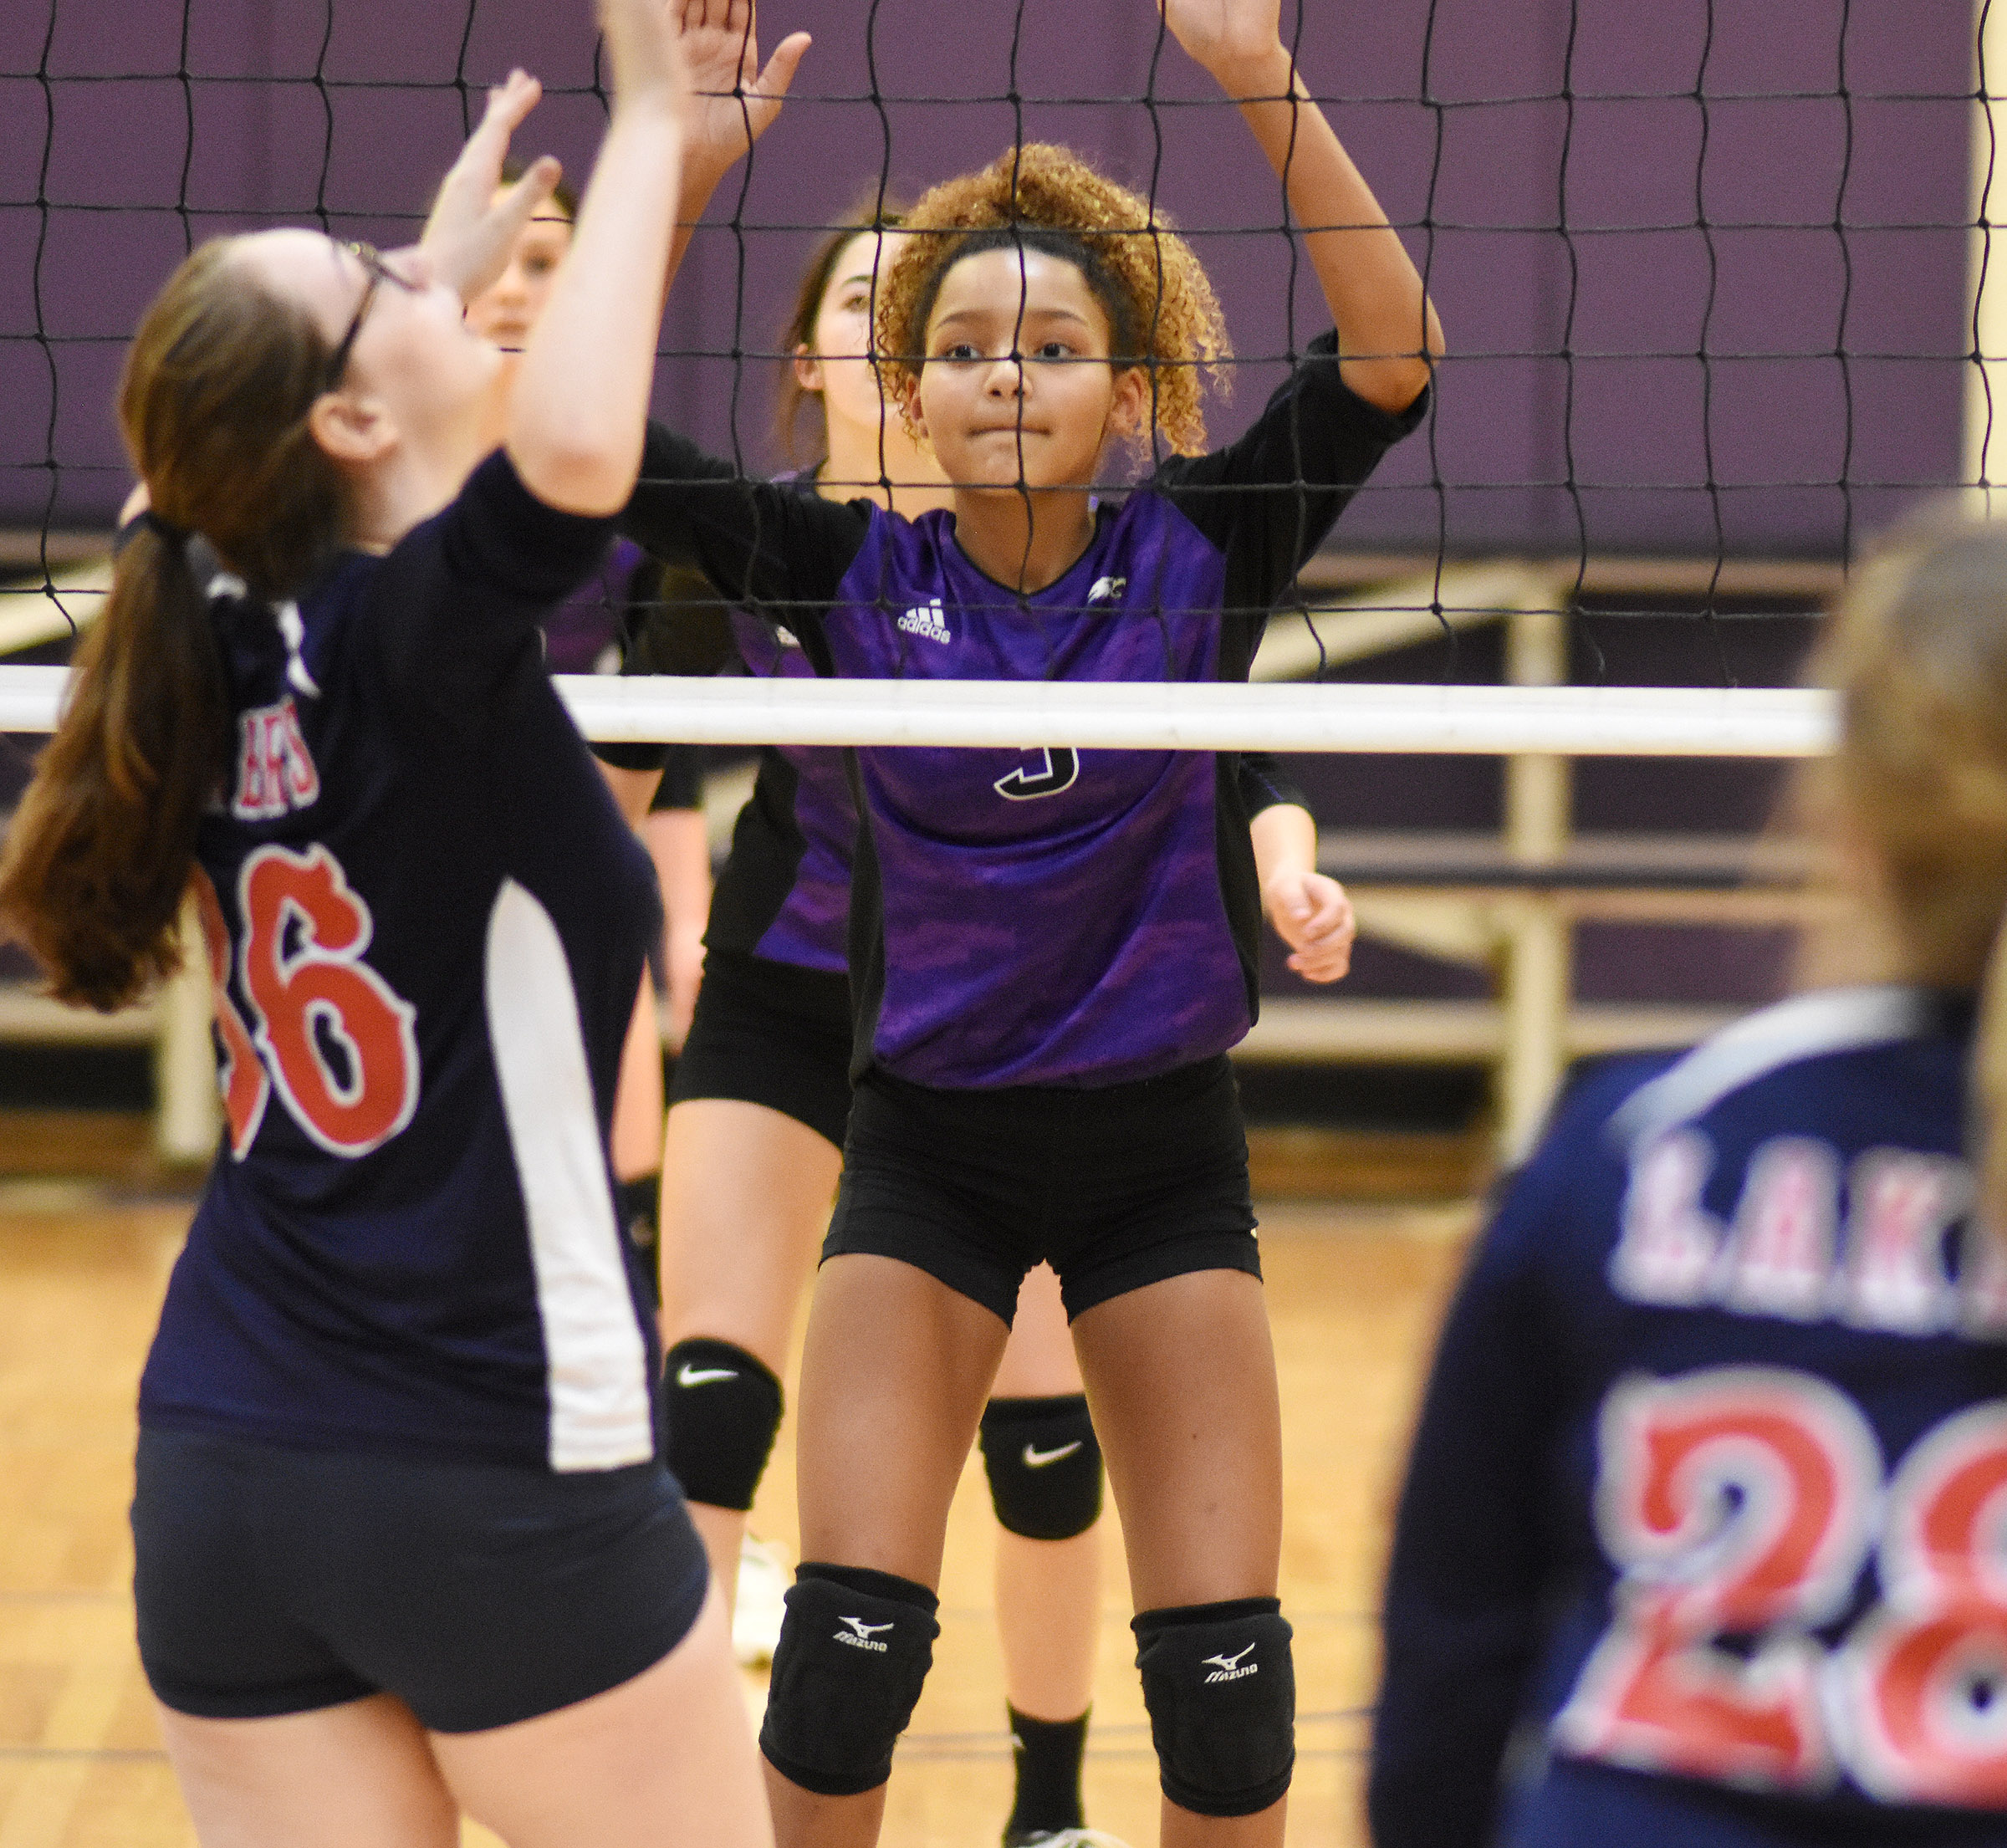 CMS eighth-grader Alexis Thomas guards the net.